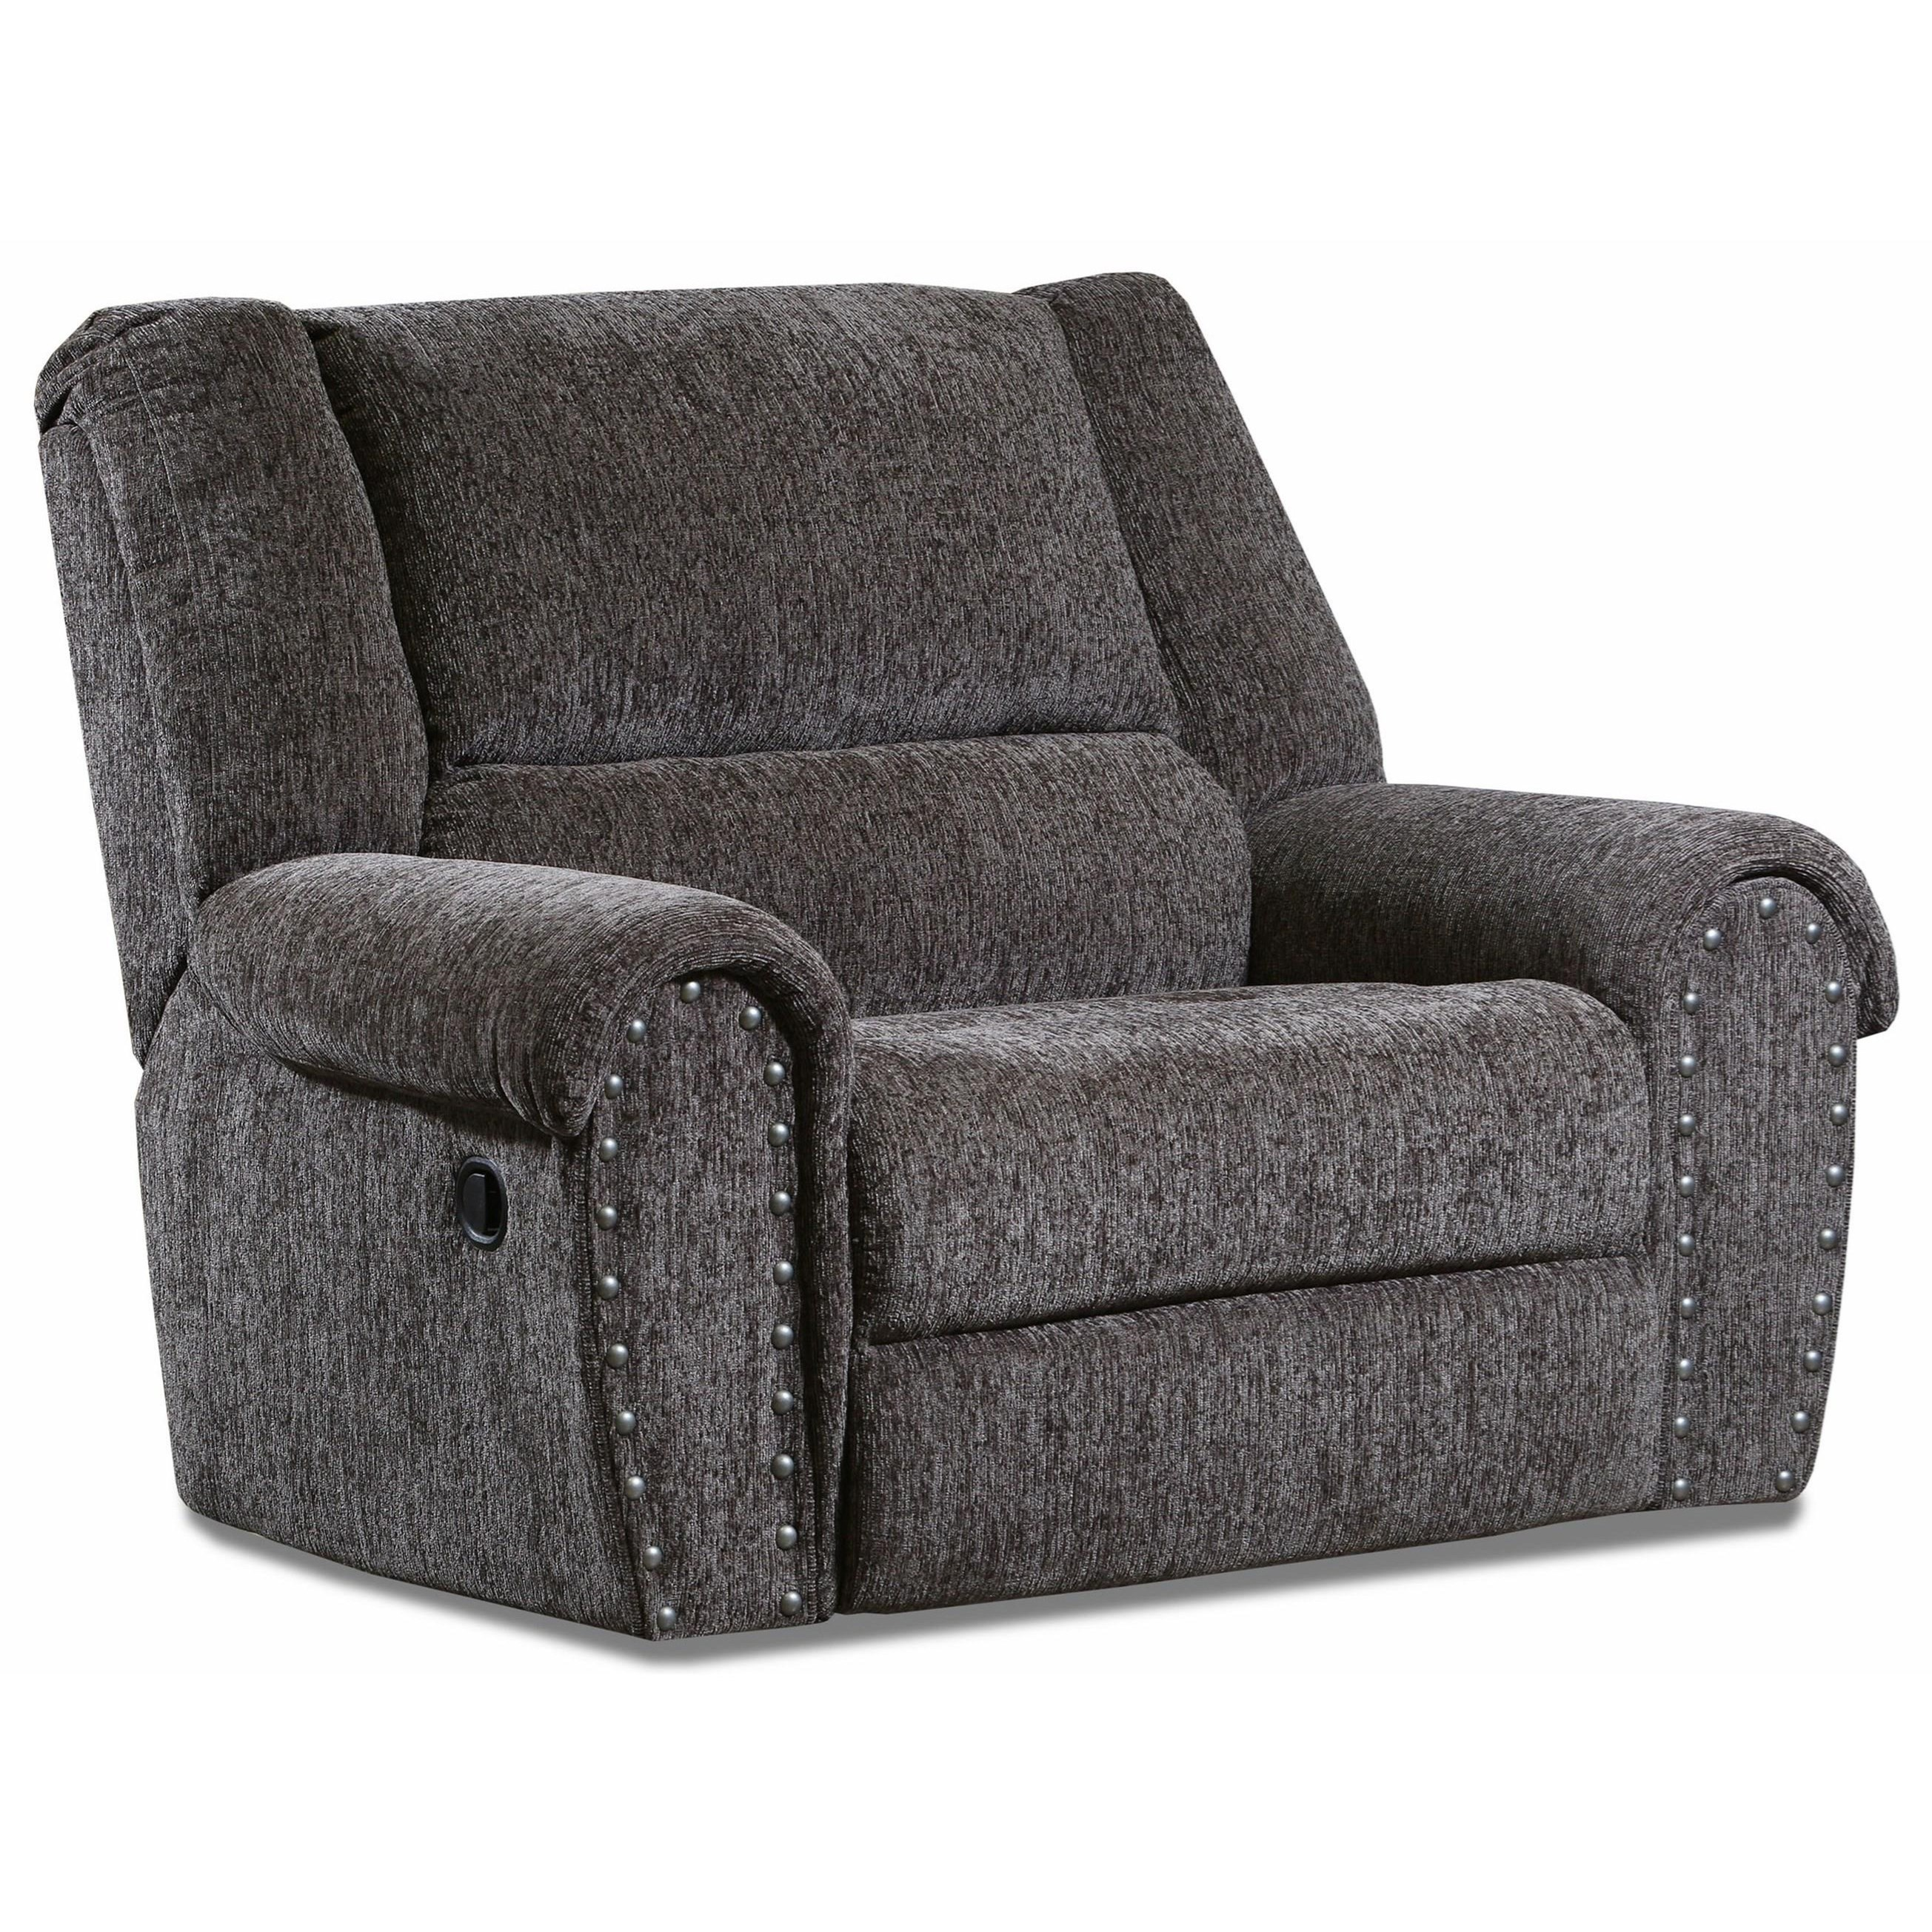 8859 Power Recliner by Peak Living at Prime Brothers Furniture